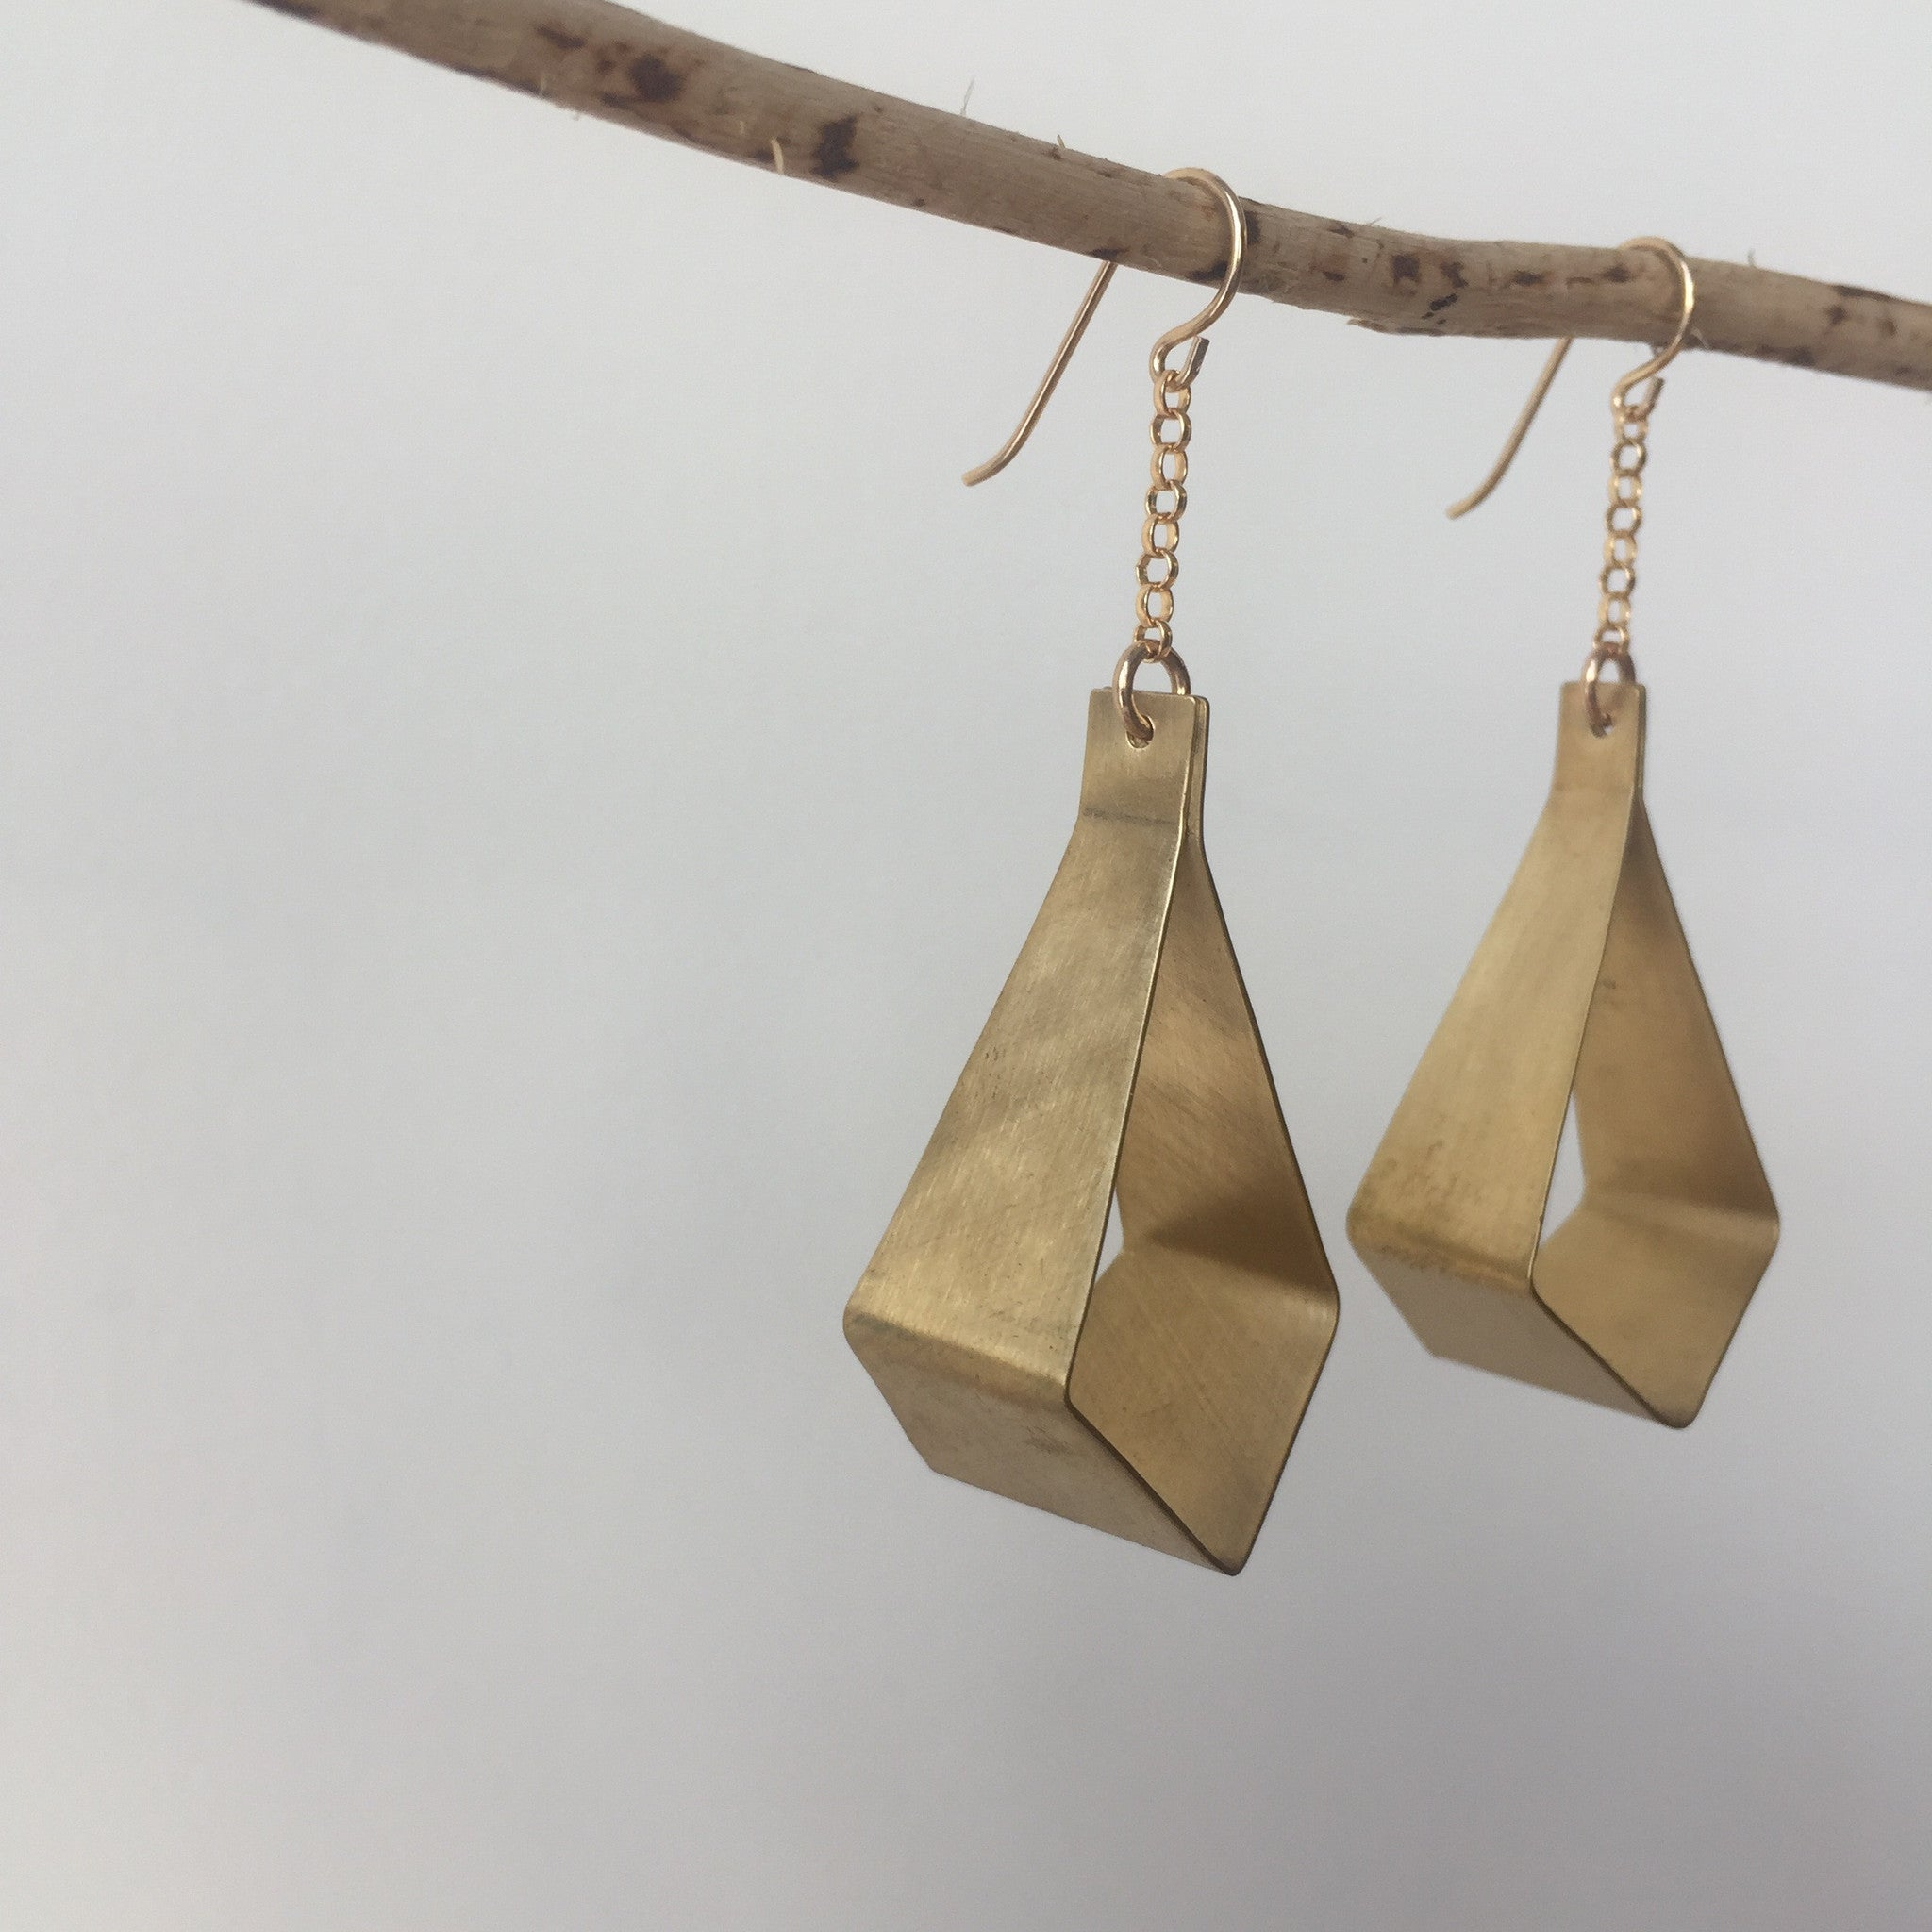 Long Brass Bent Earrings by Silvercocoon